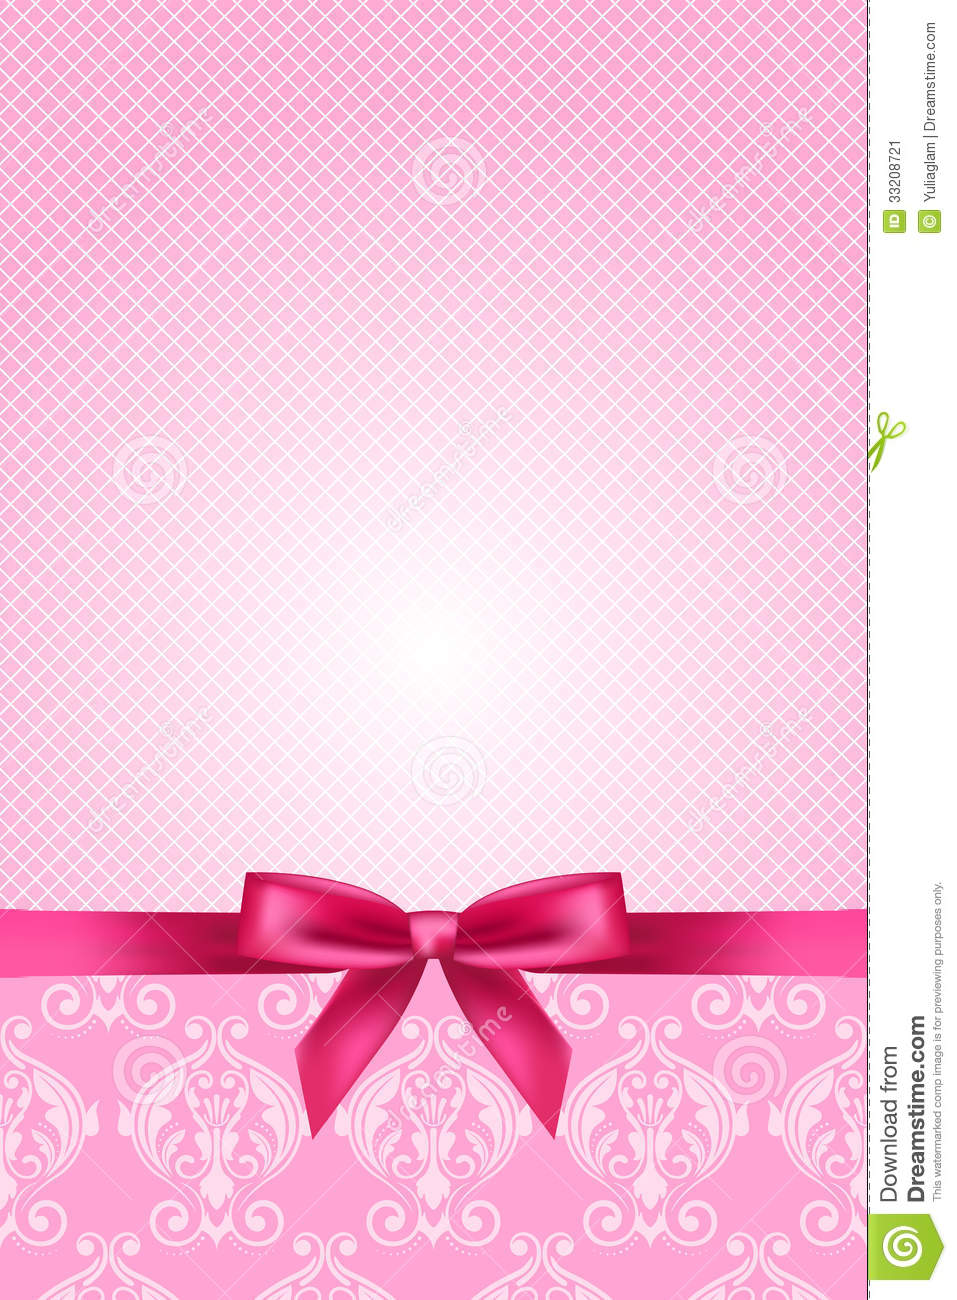 Animated Princess Wallpapers Pink Wallpaper With Bow Stock Vector Image Of Card